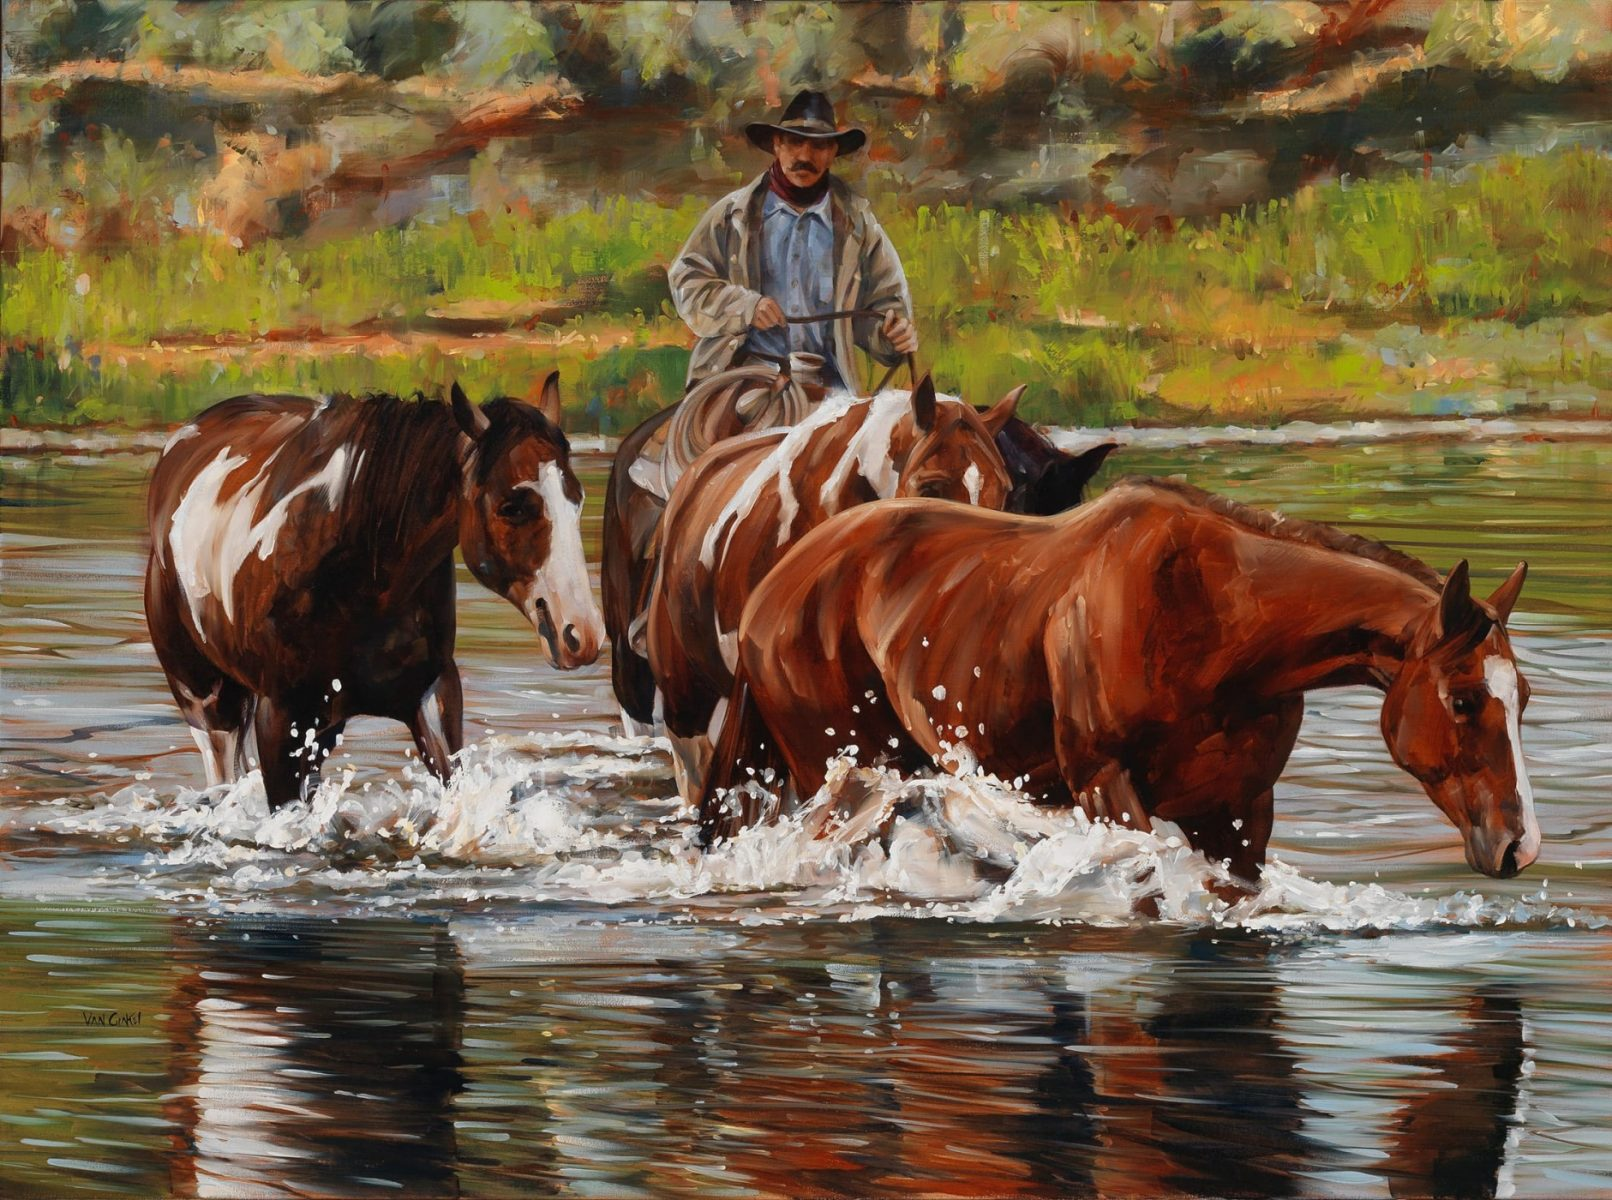 Riding the Current by artist Paul Van Ginkel